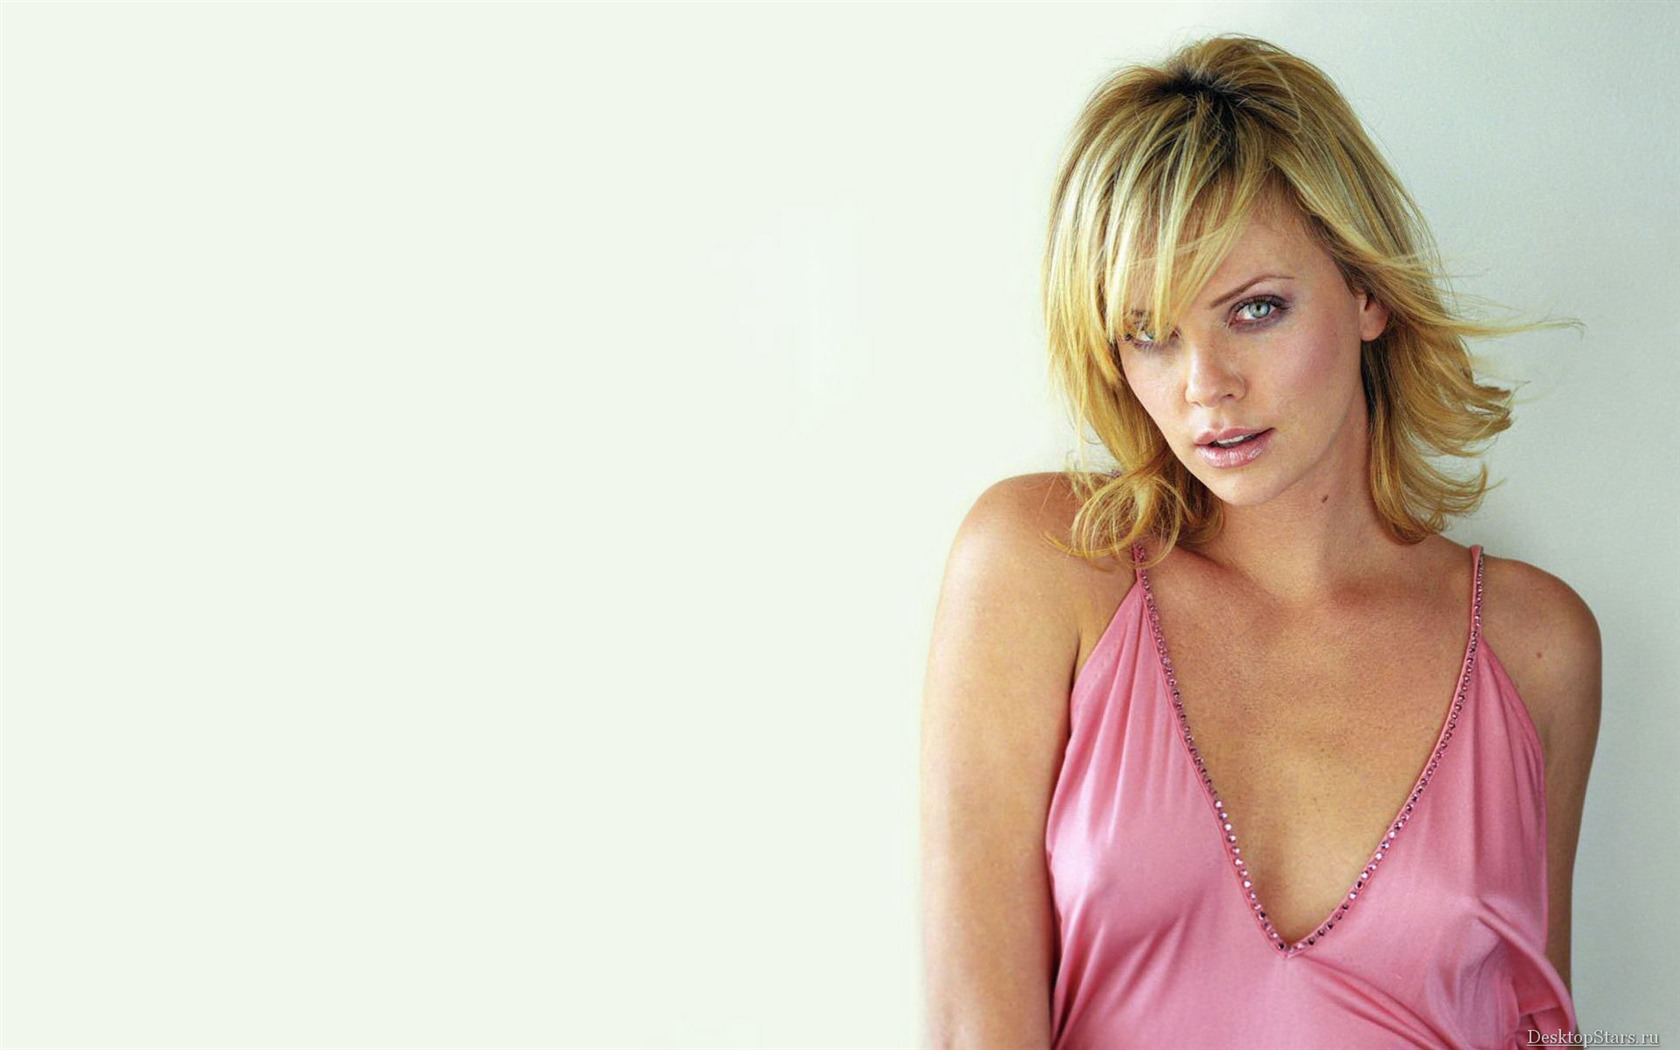 Charlize Theron #063 - 1680x1050 Wallpapers Pictures Photos Images